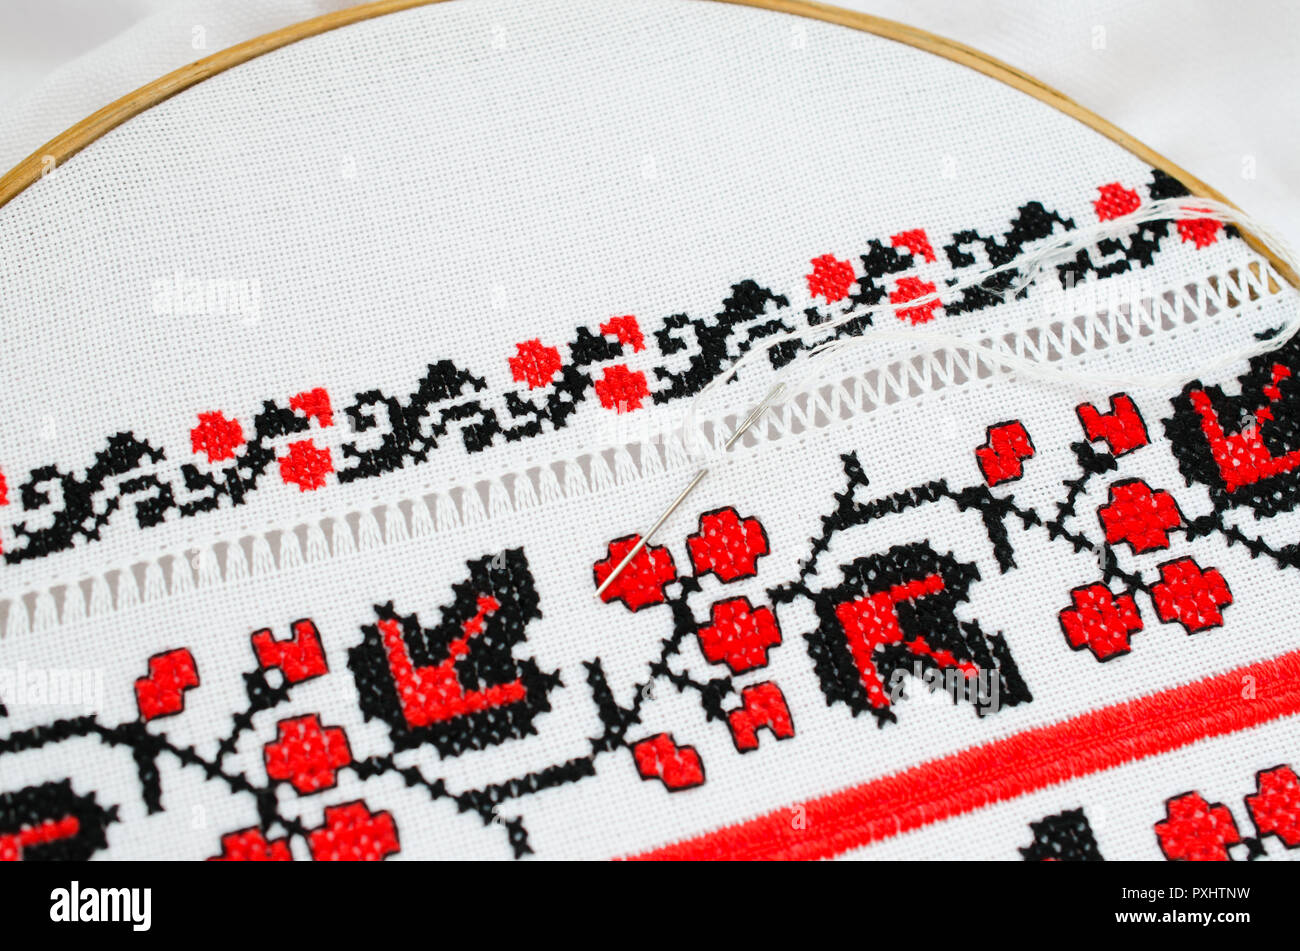 Embroidery Pattern The Imágenes De Stock & Embroidery Pattern The ...